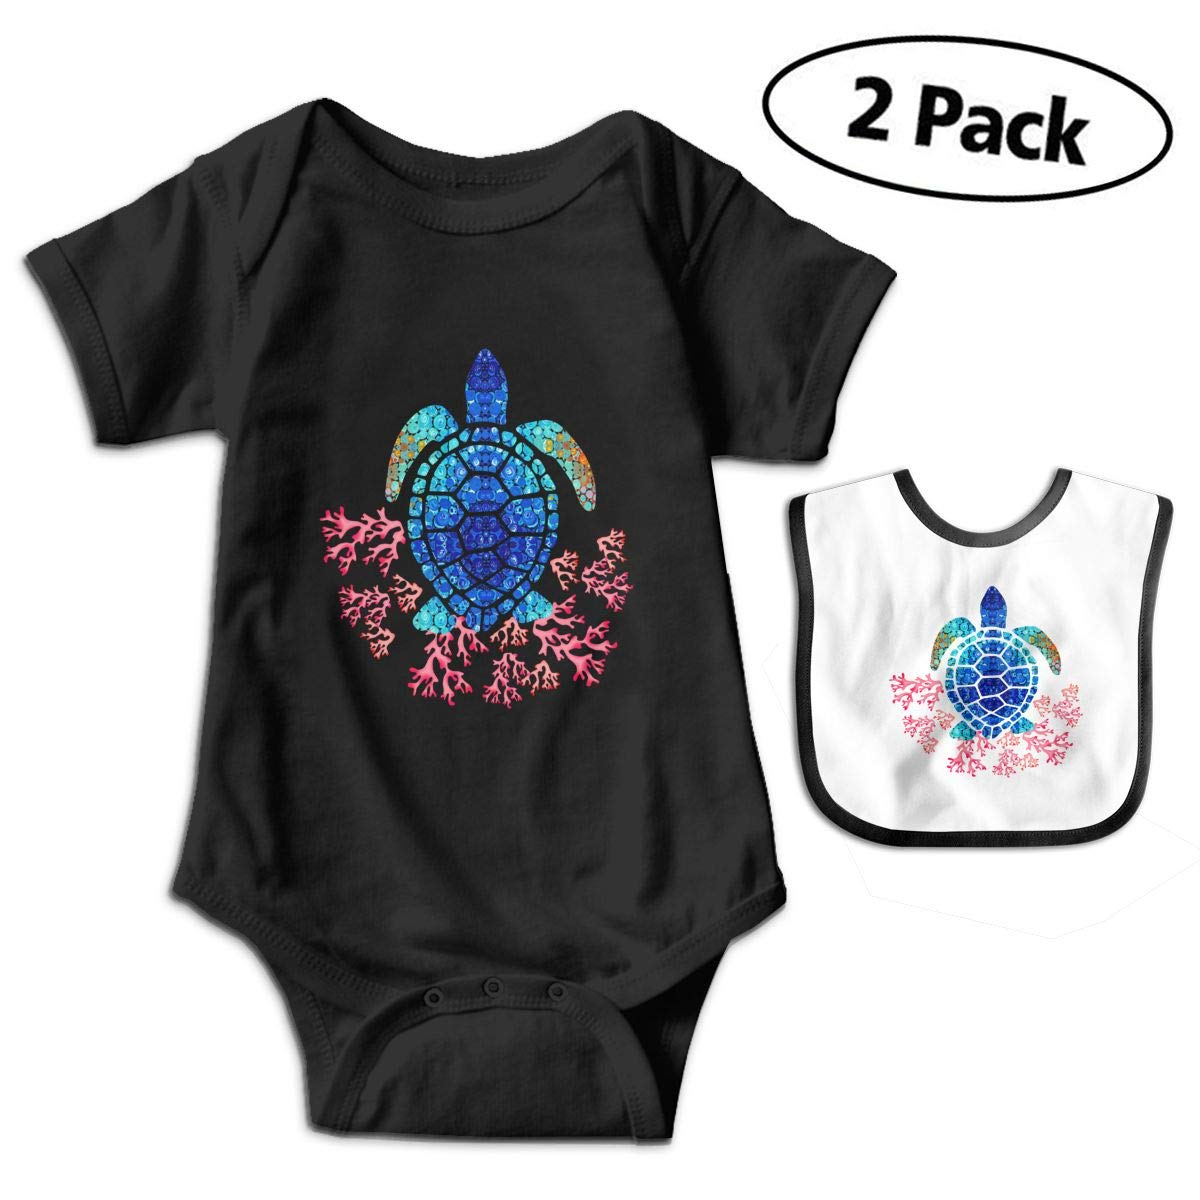 Colored SEA Turtle Coral Infant Baby Boys Girls Short Sleeve Romper Bodysuit Outfit Clothes